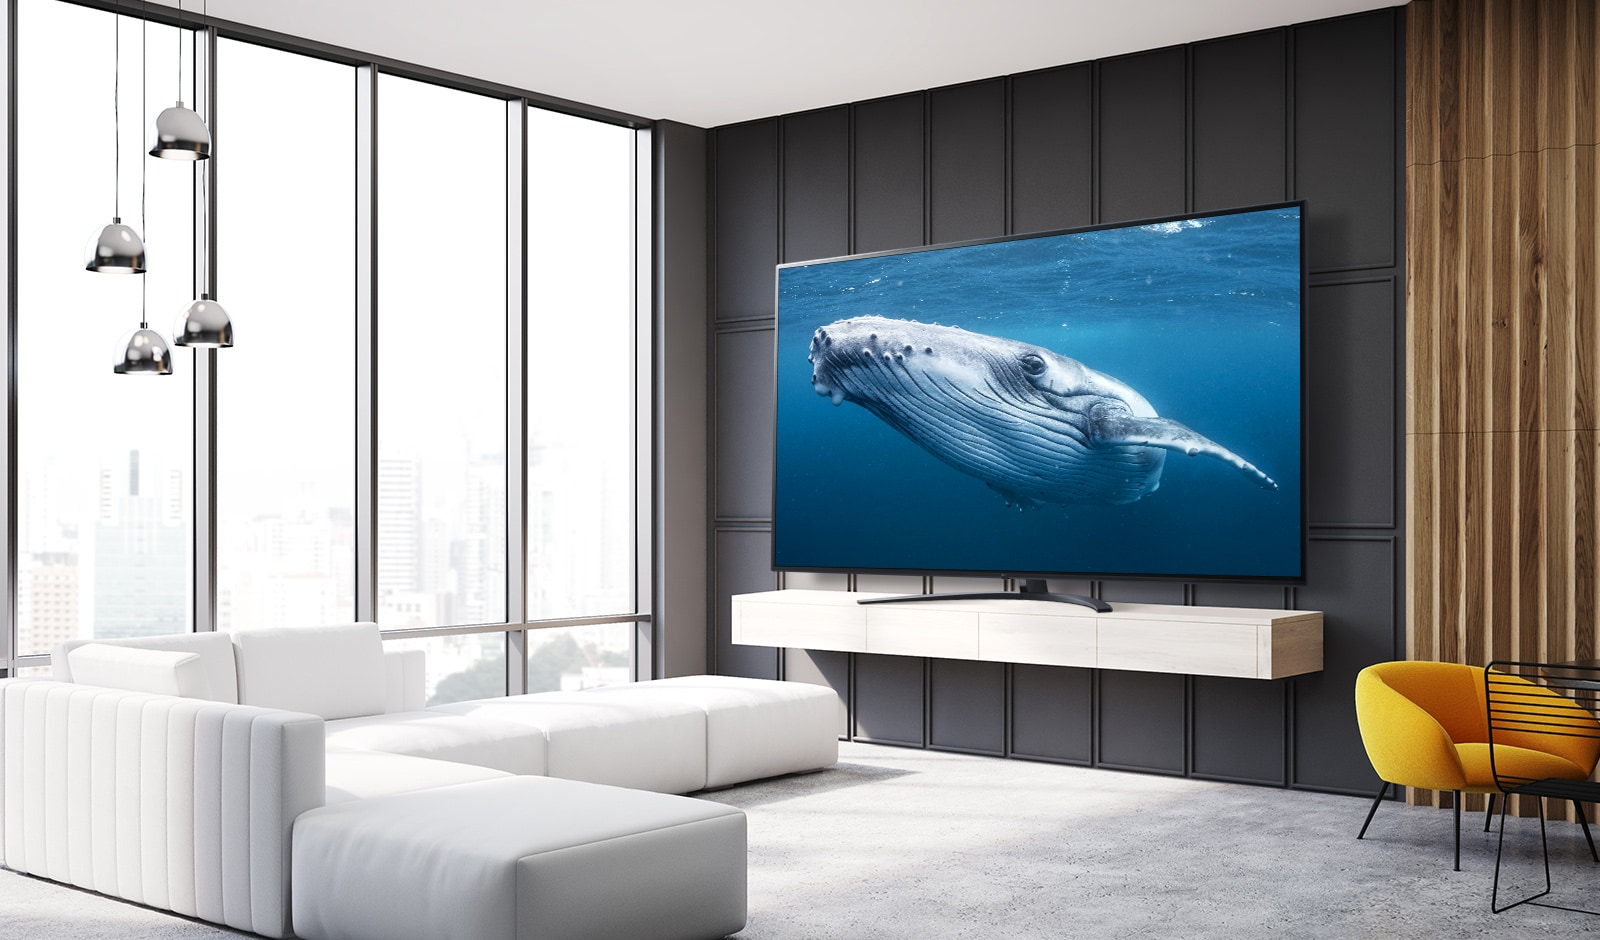 In a living room, there is a large screen TV displaying an image of a big whale in the sea.